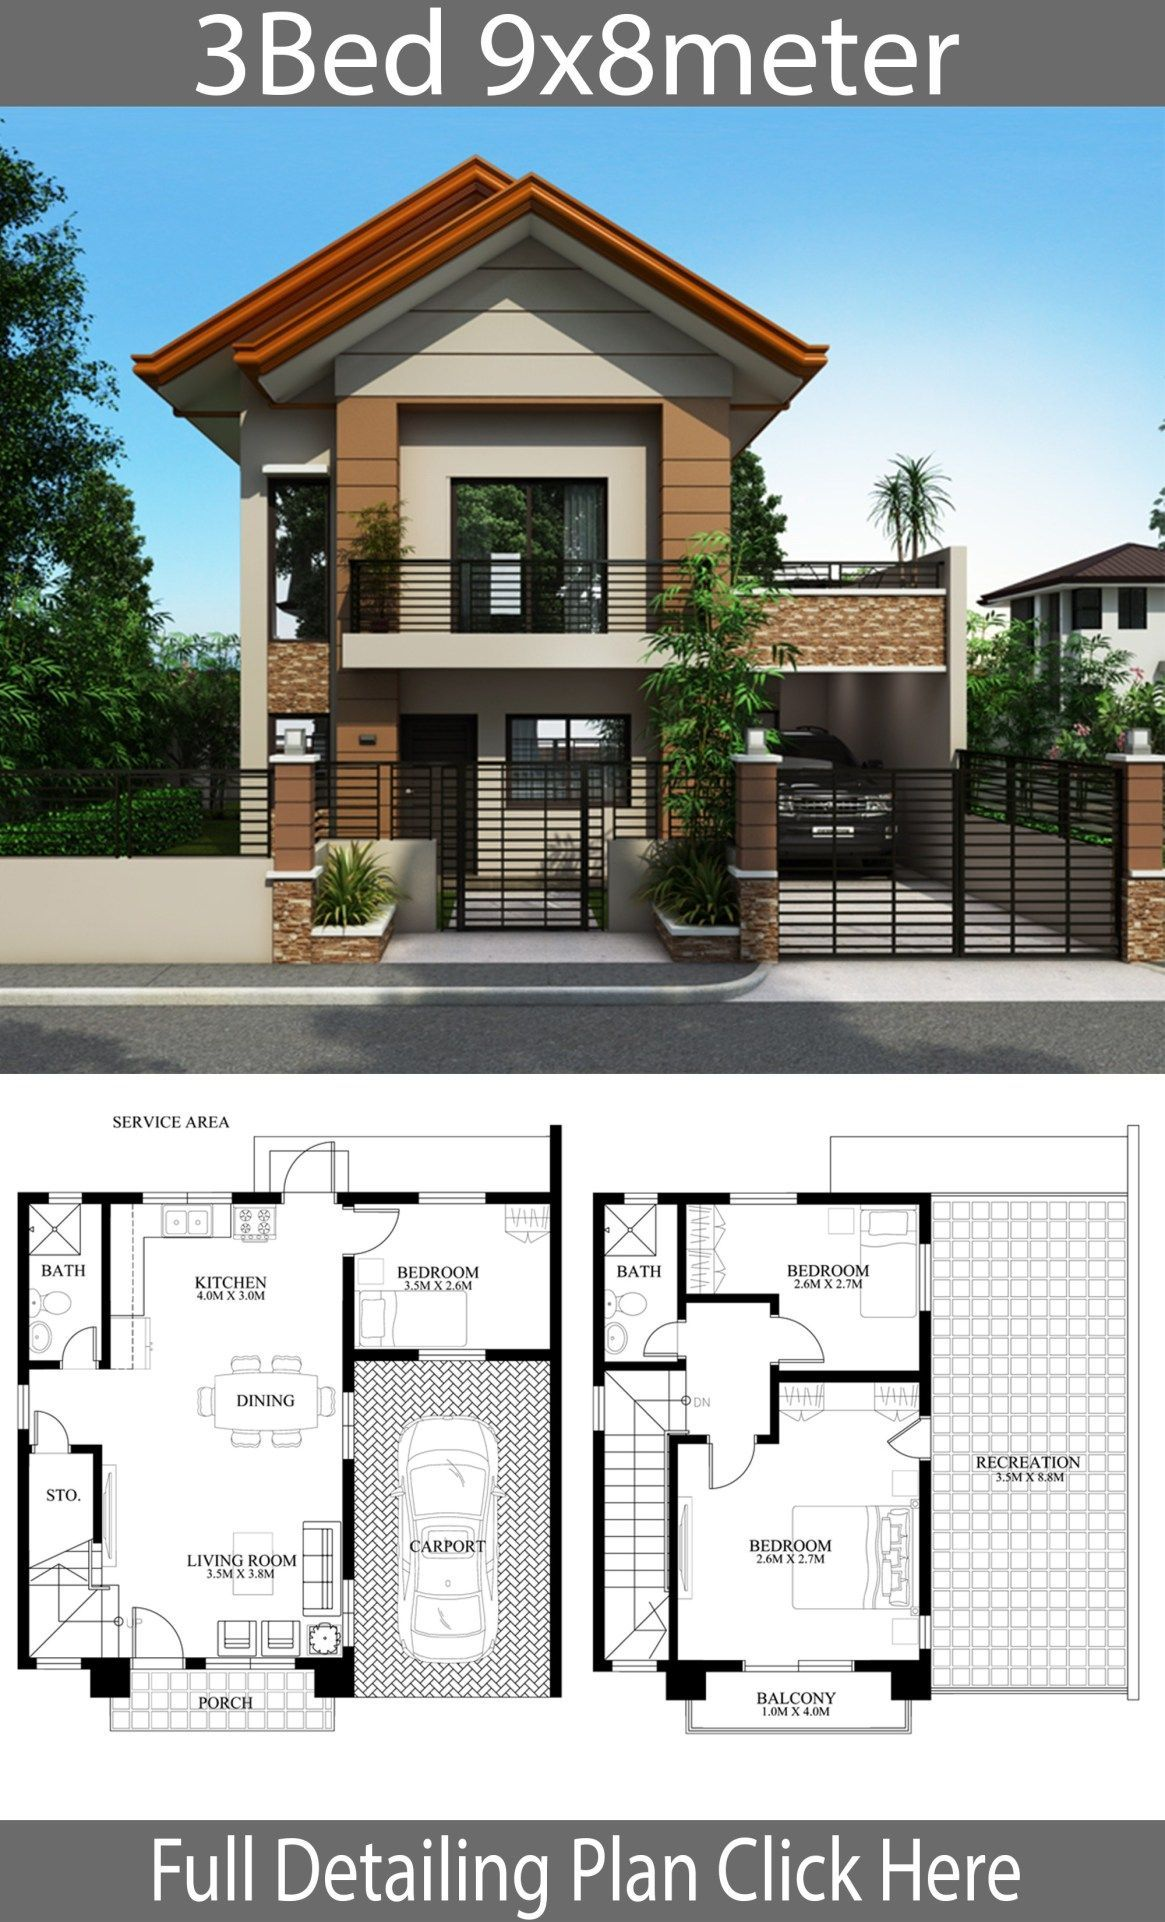 Home Design Plan 9x8m With 3 Bedrooms Philippines House Design Simple House Design In 2020 Philippines House Design Modern House Floor Plans 2 Storey House Design